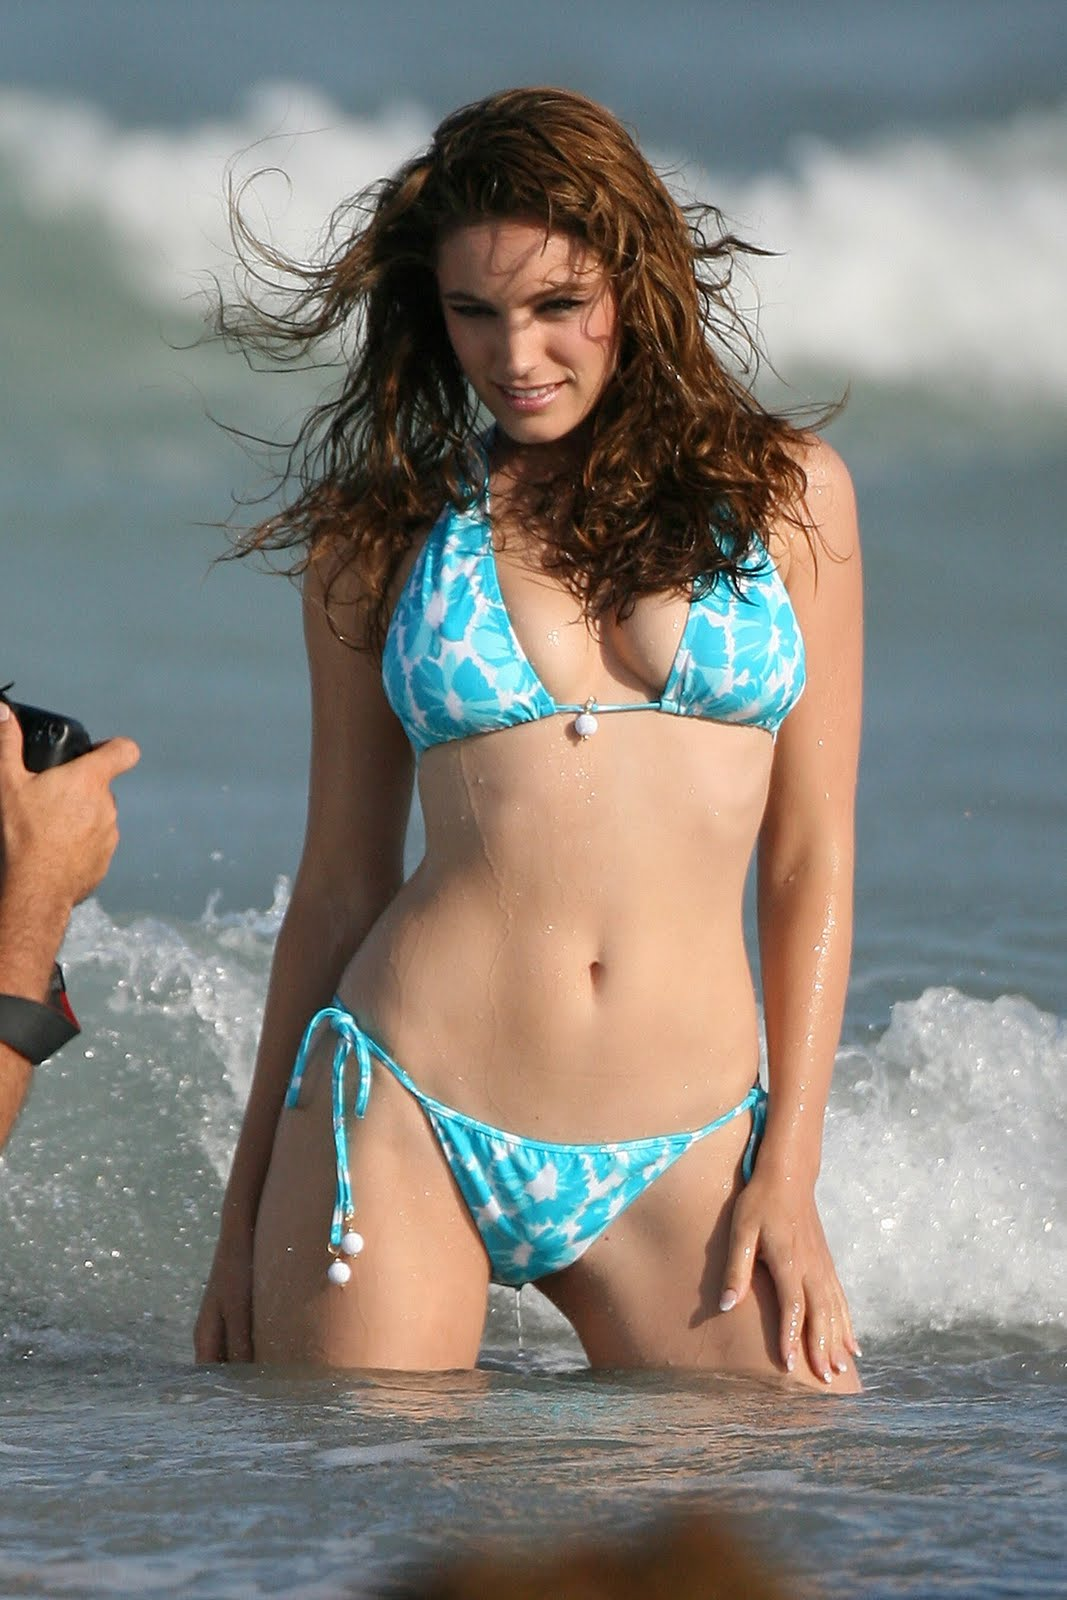 Topless Photoset of Nicola Paul | The Fappening. 2014-2020 celebrity photo leaks!